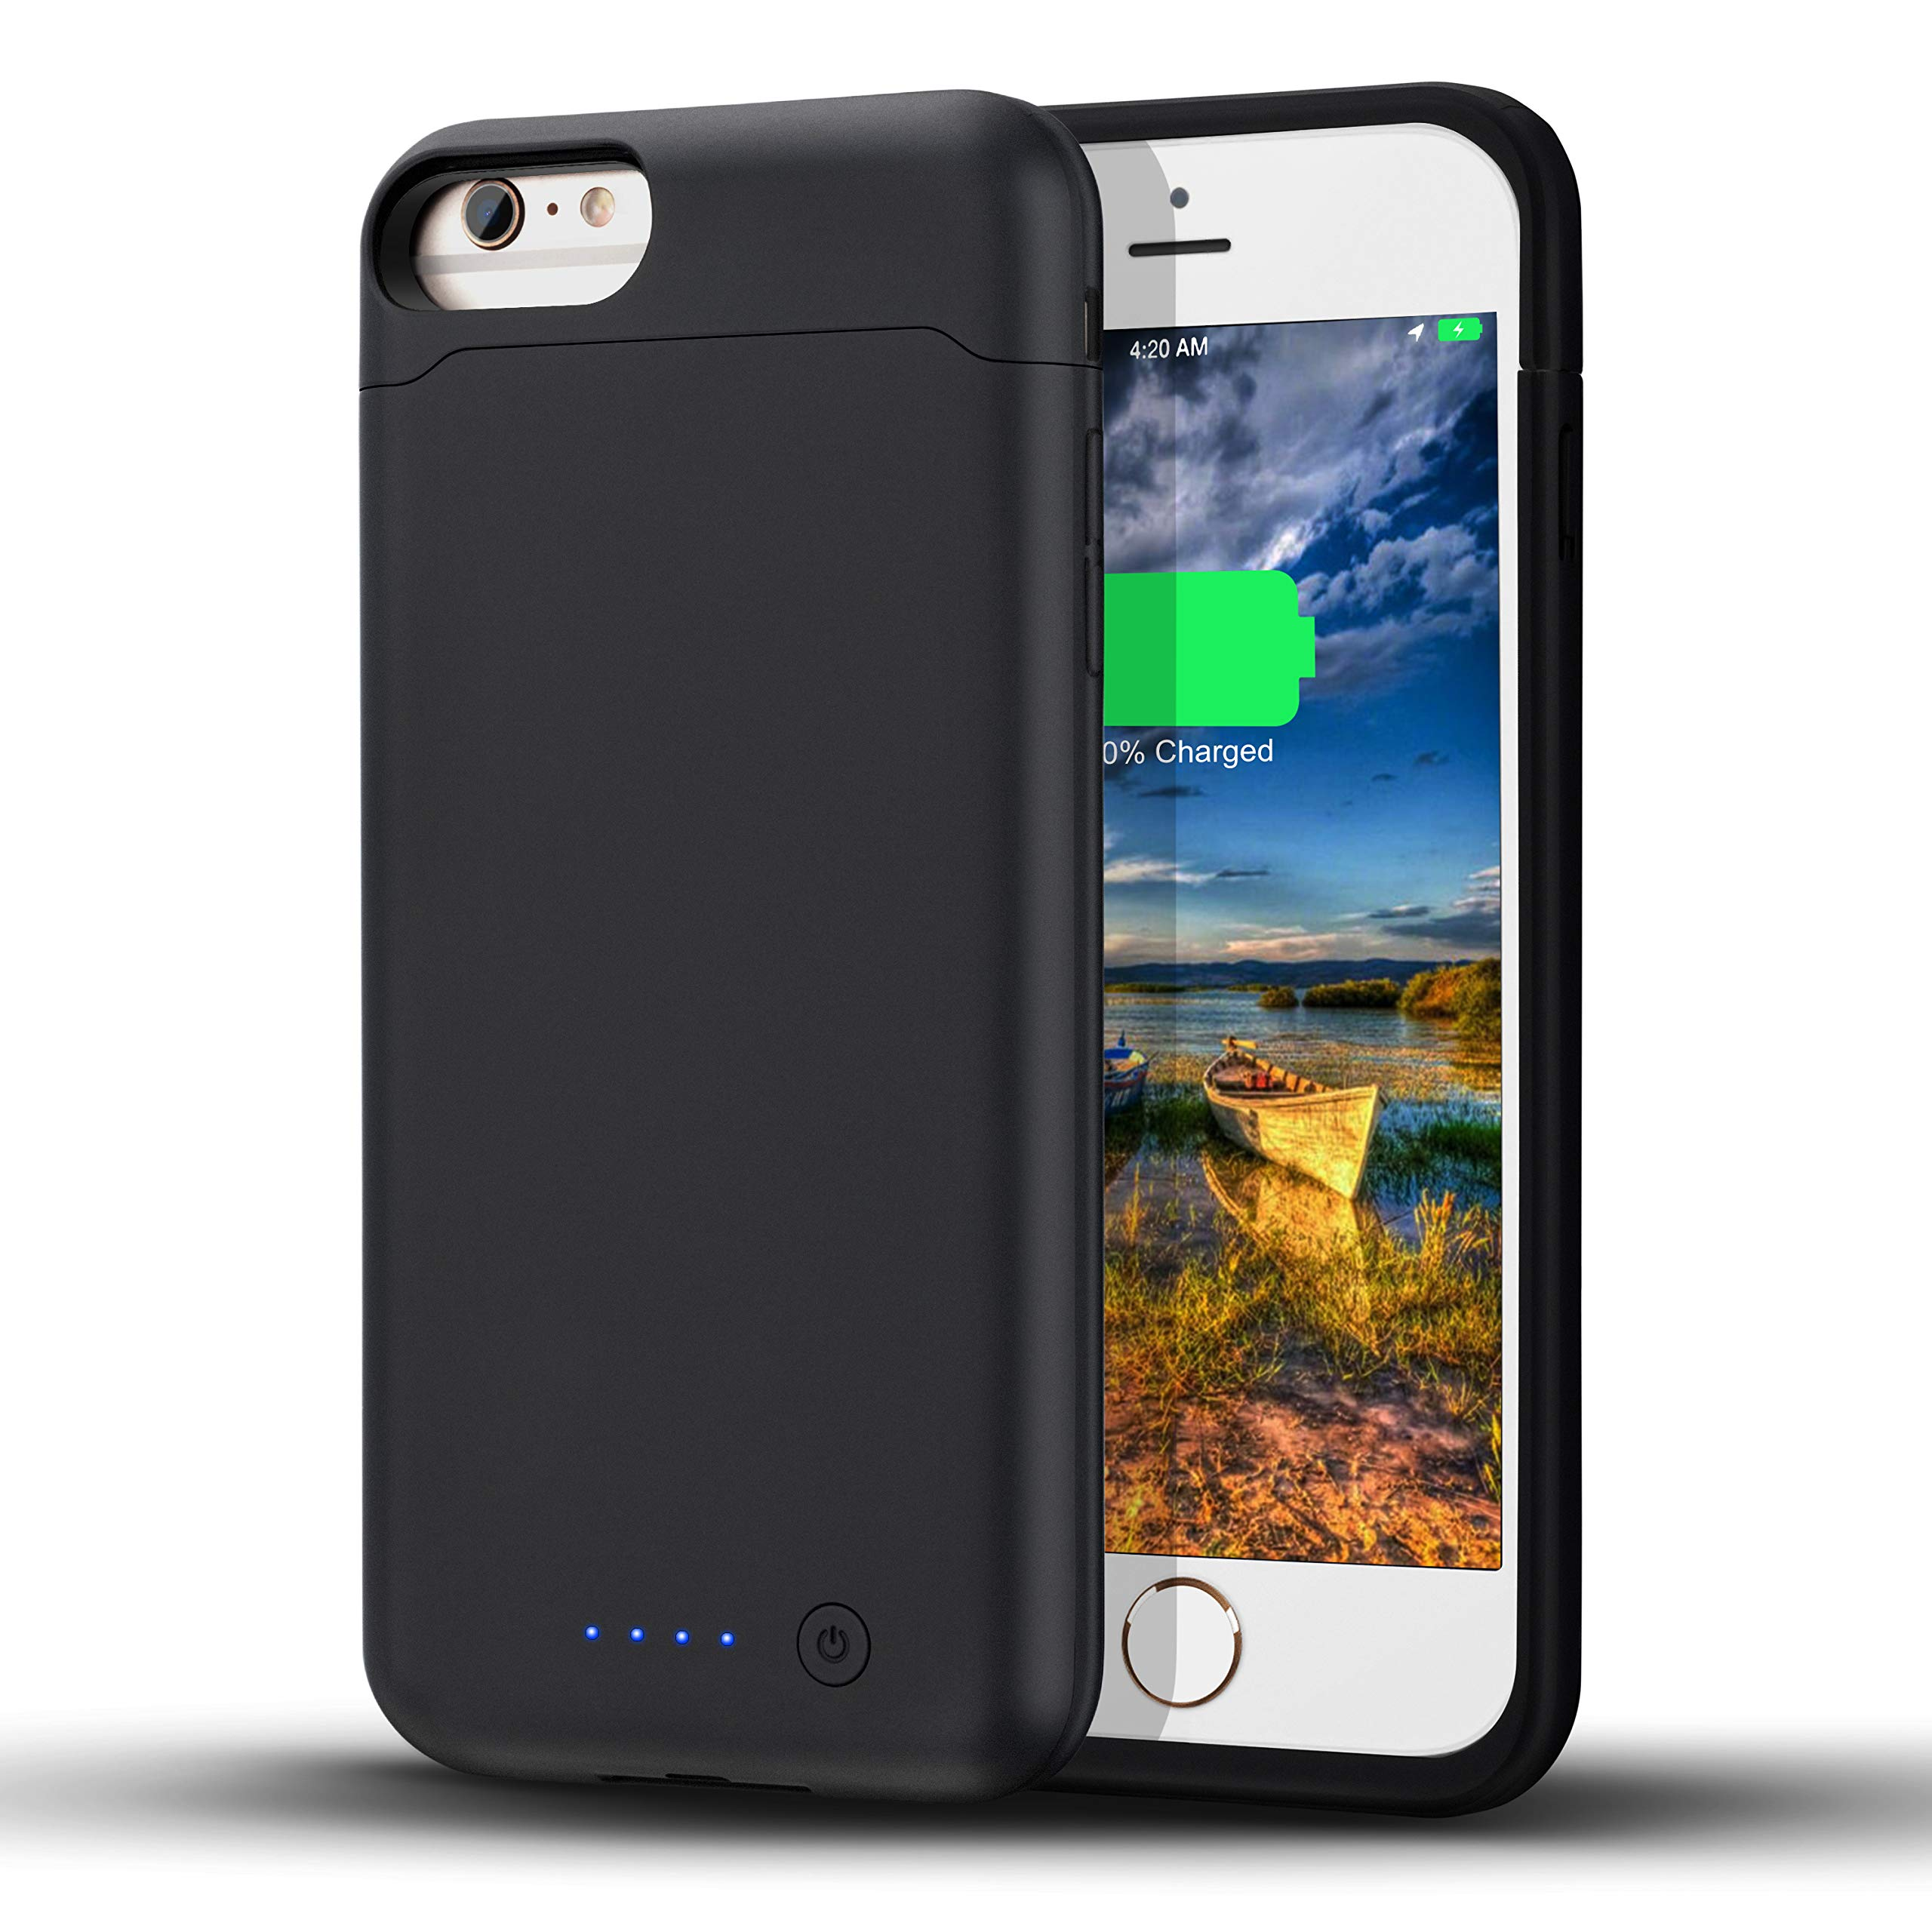 LCLEBM Battery Case for iPhone 6 Plus/ 6s Plus (5.5 inch), 8500mAh High Capacity Extended Battery Charger Case, Portable Protective Charging Case Compatible with iPhone 6 Plus/6s Plus - Black